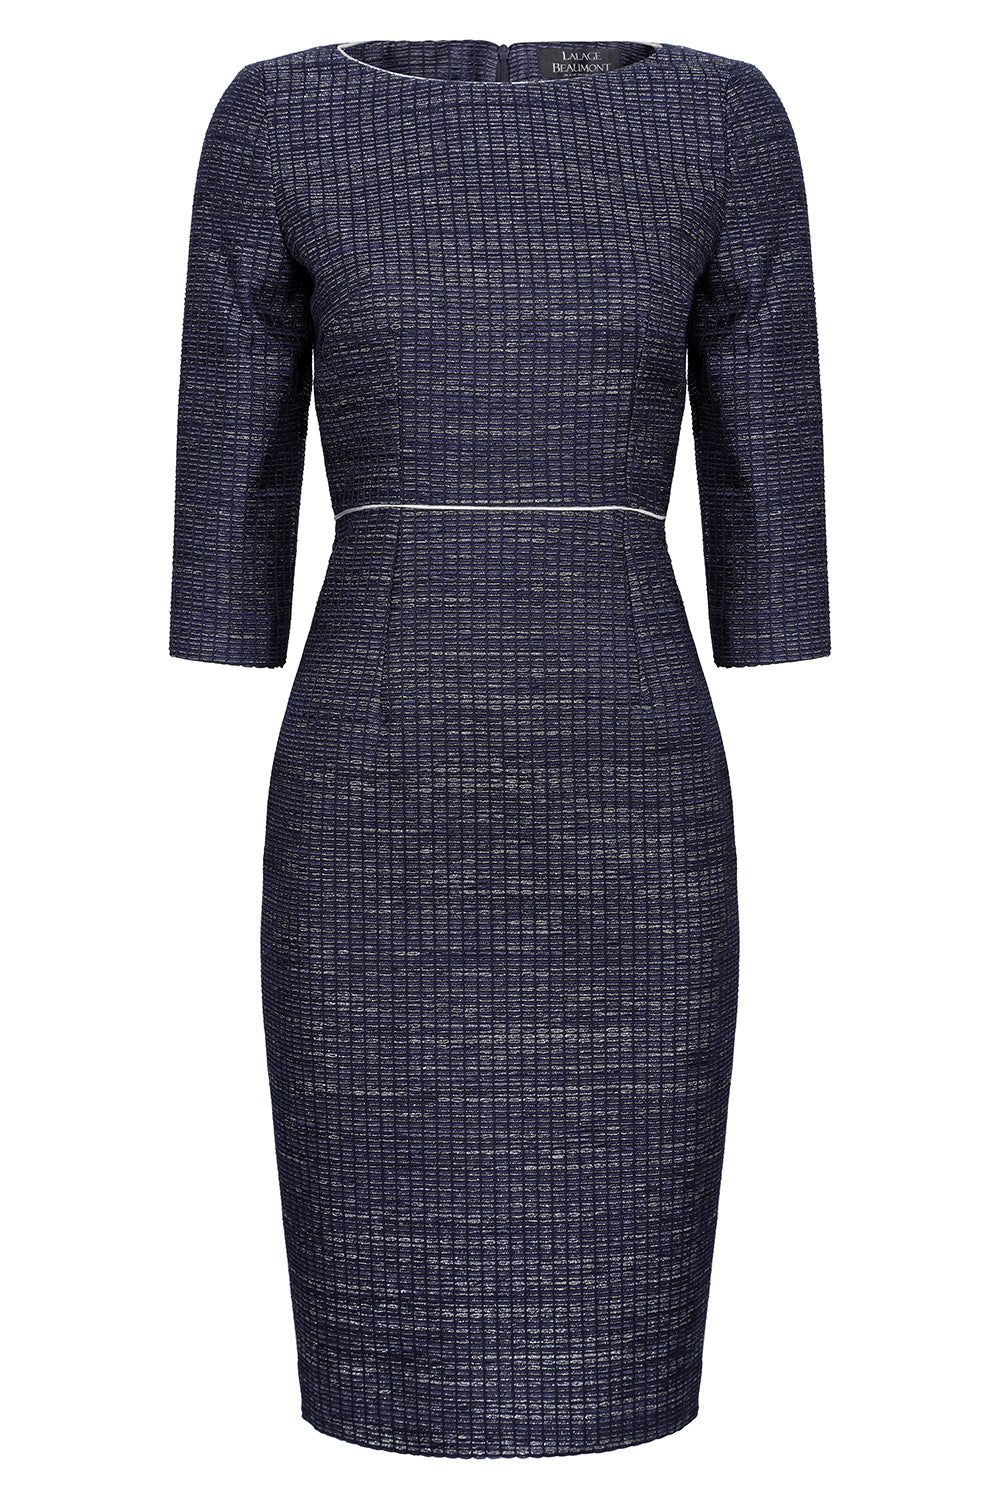 navy occasion wear dress by Lalage Beaumont